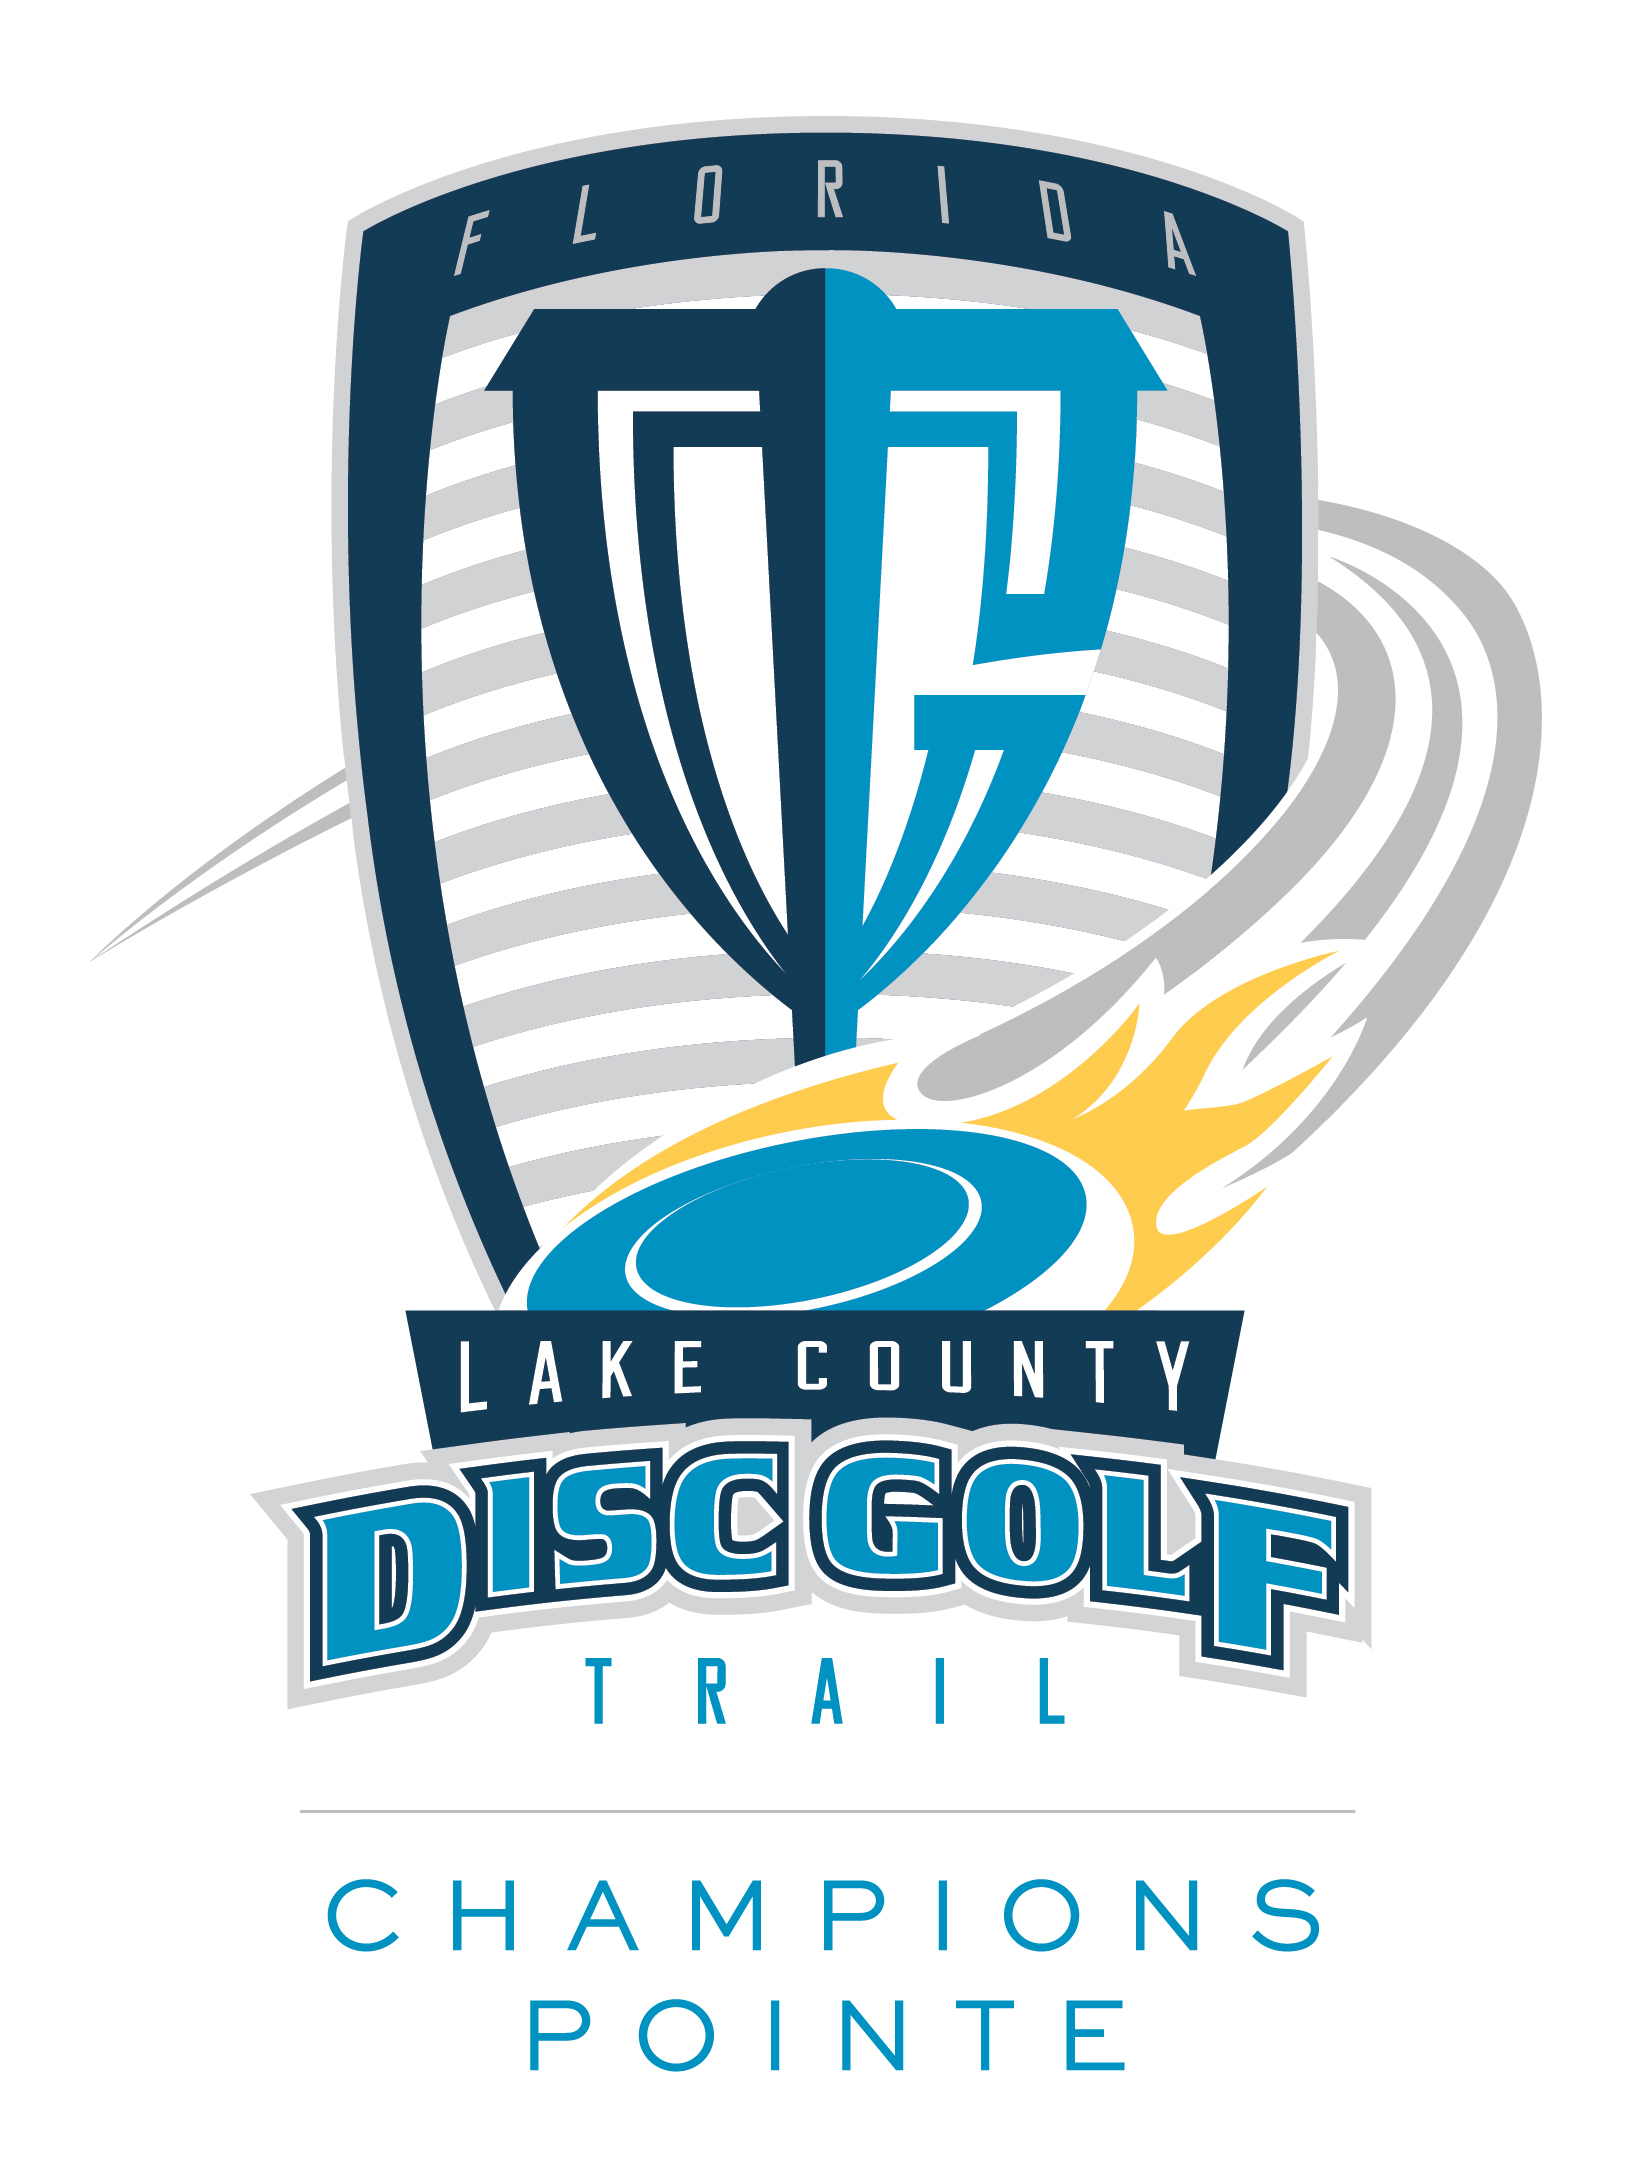 Logo for Champions Pointe on the Lake County Disc Golf Trail